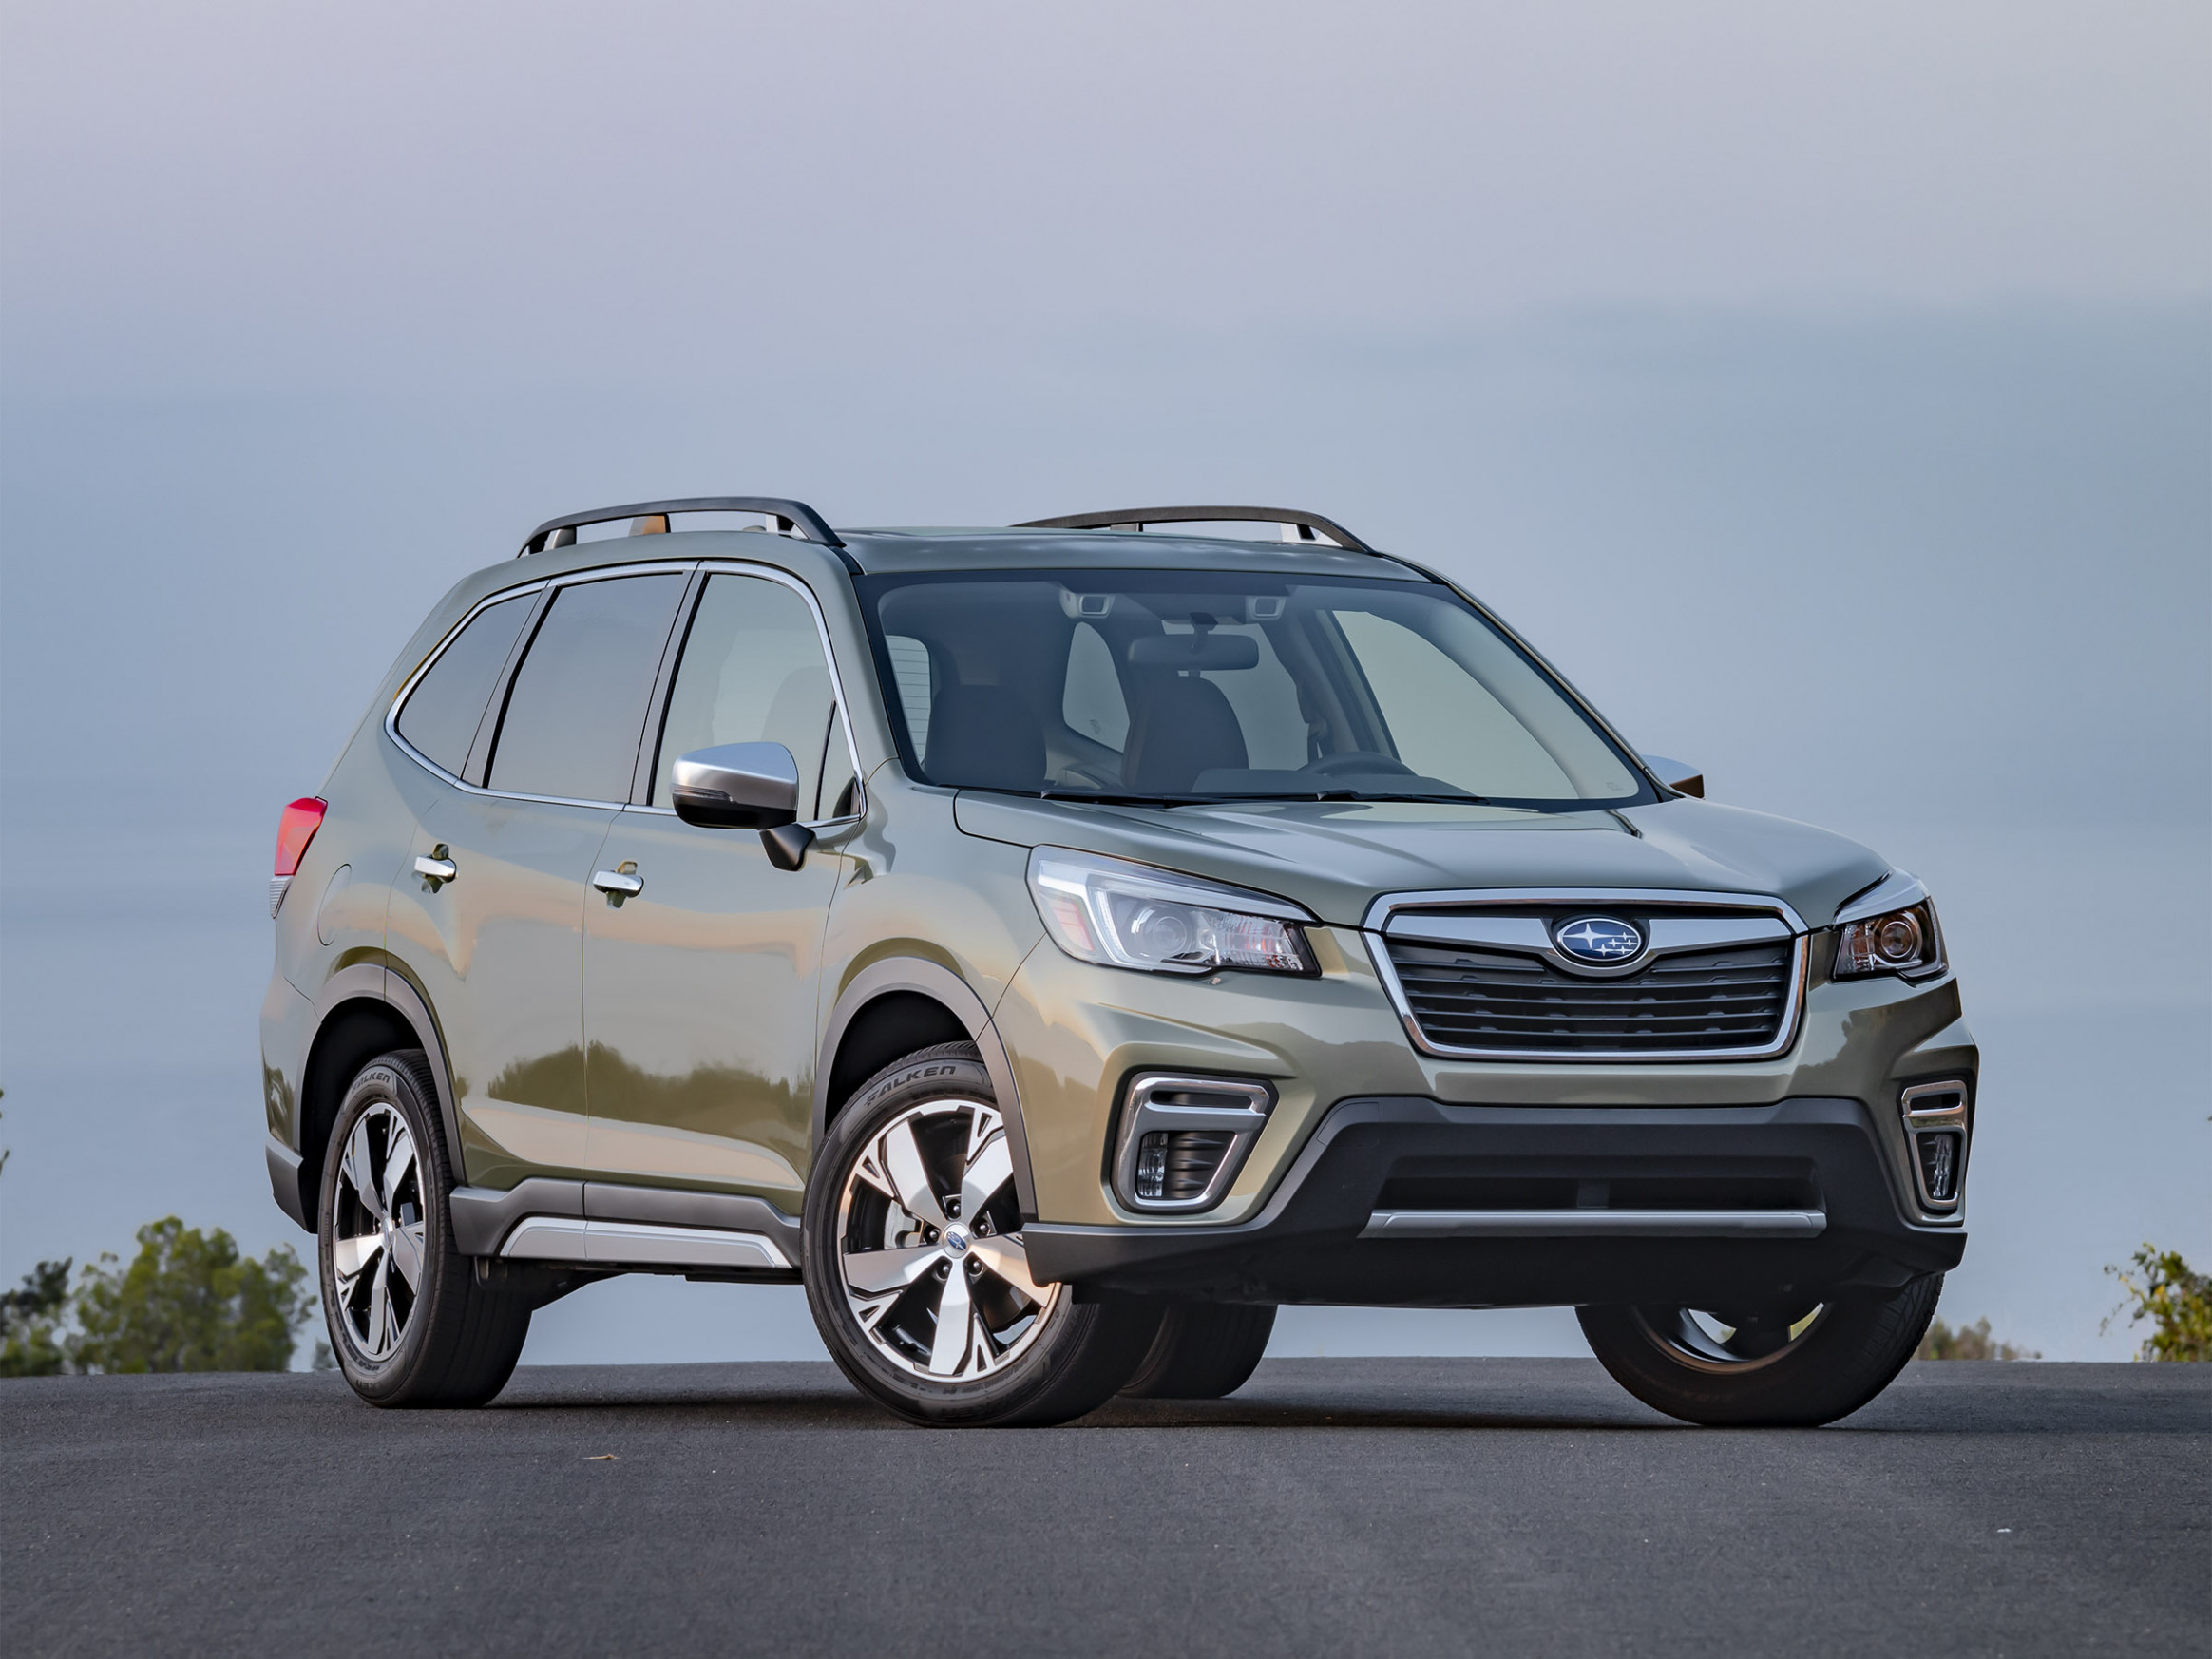 6 Best Family Cars: 6 Subaru Forester | Kelley Blue Book